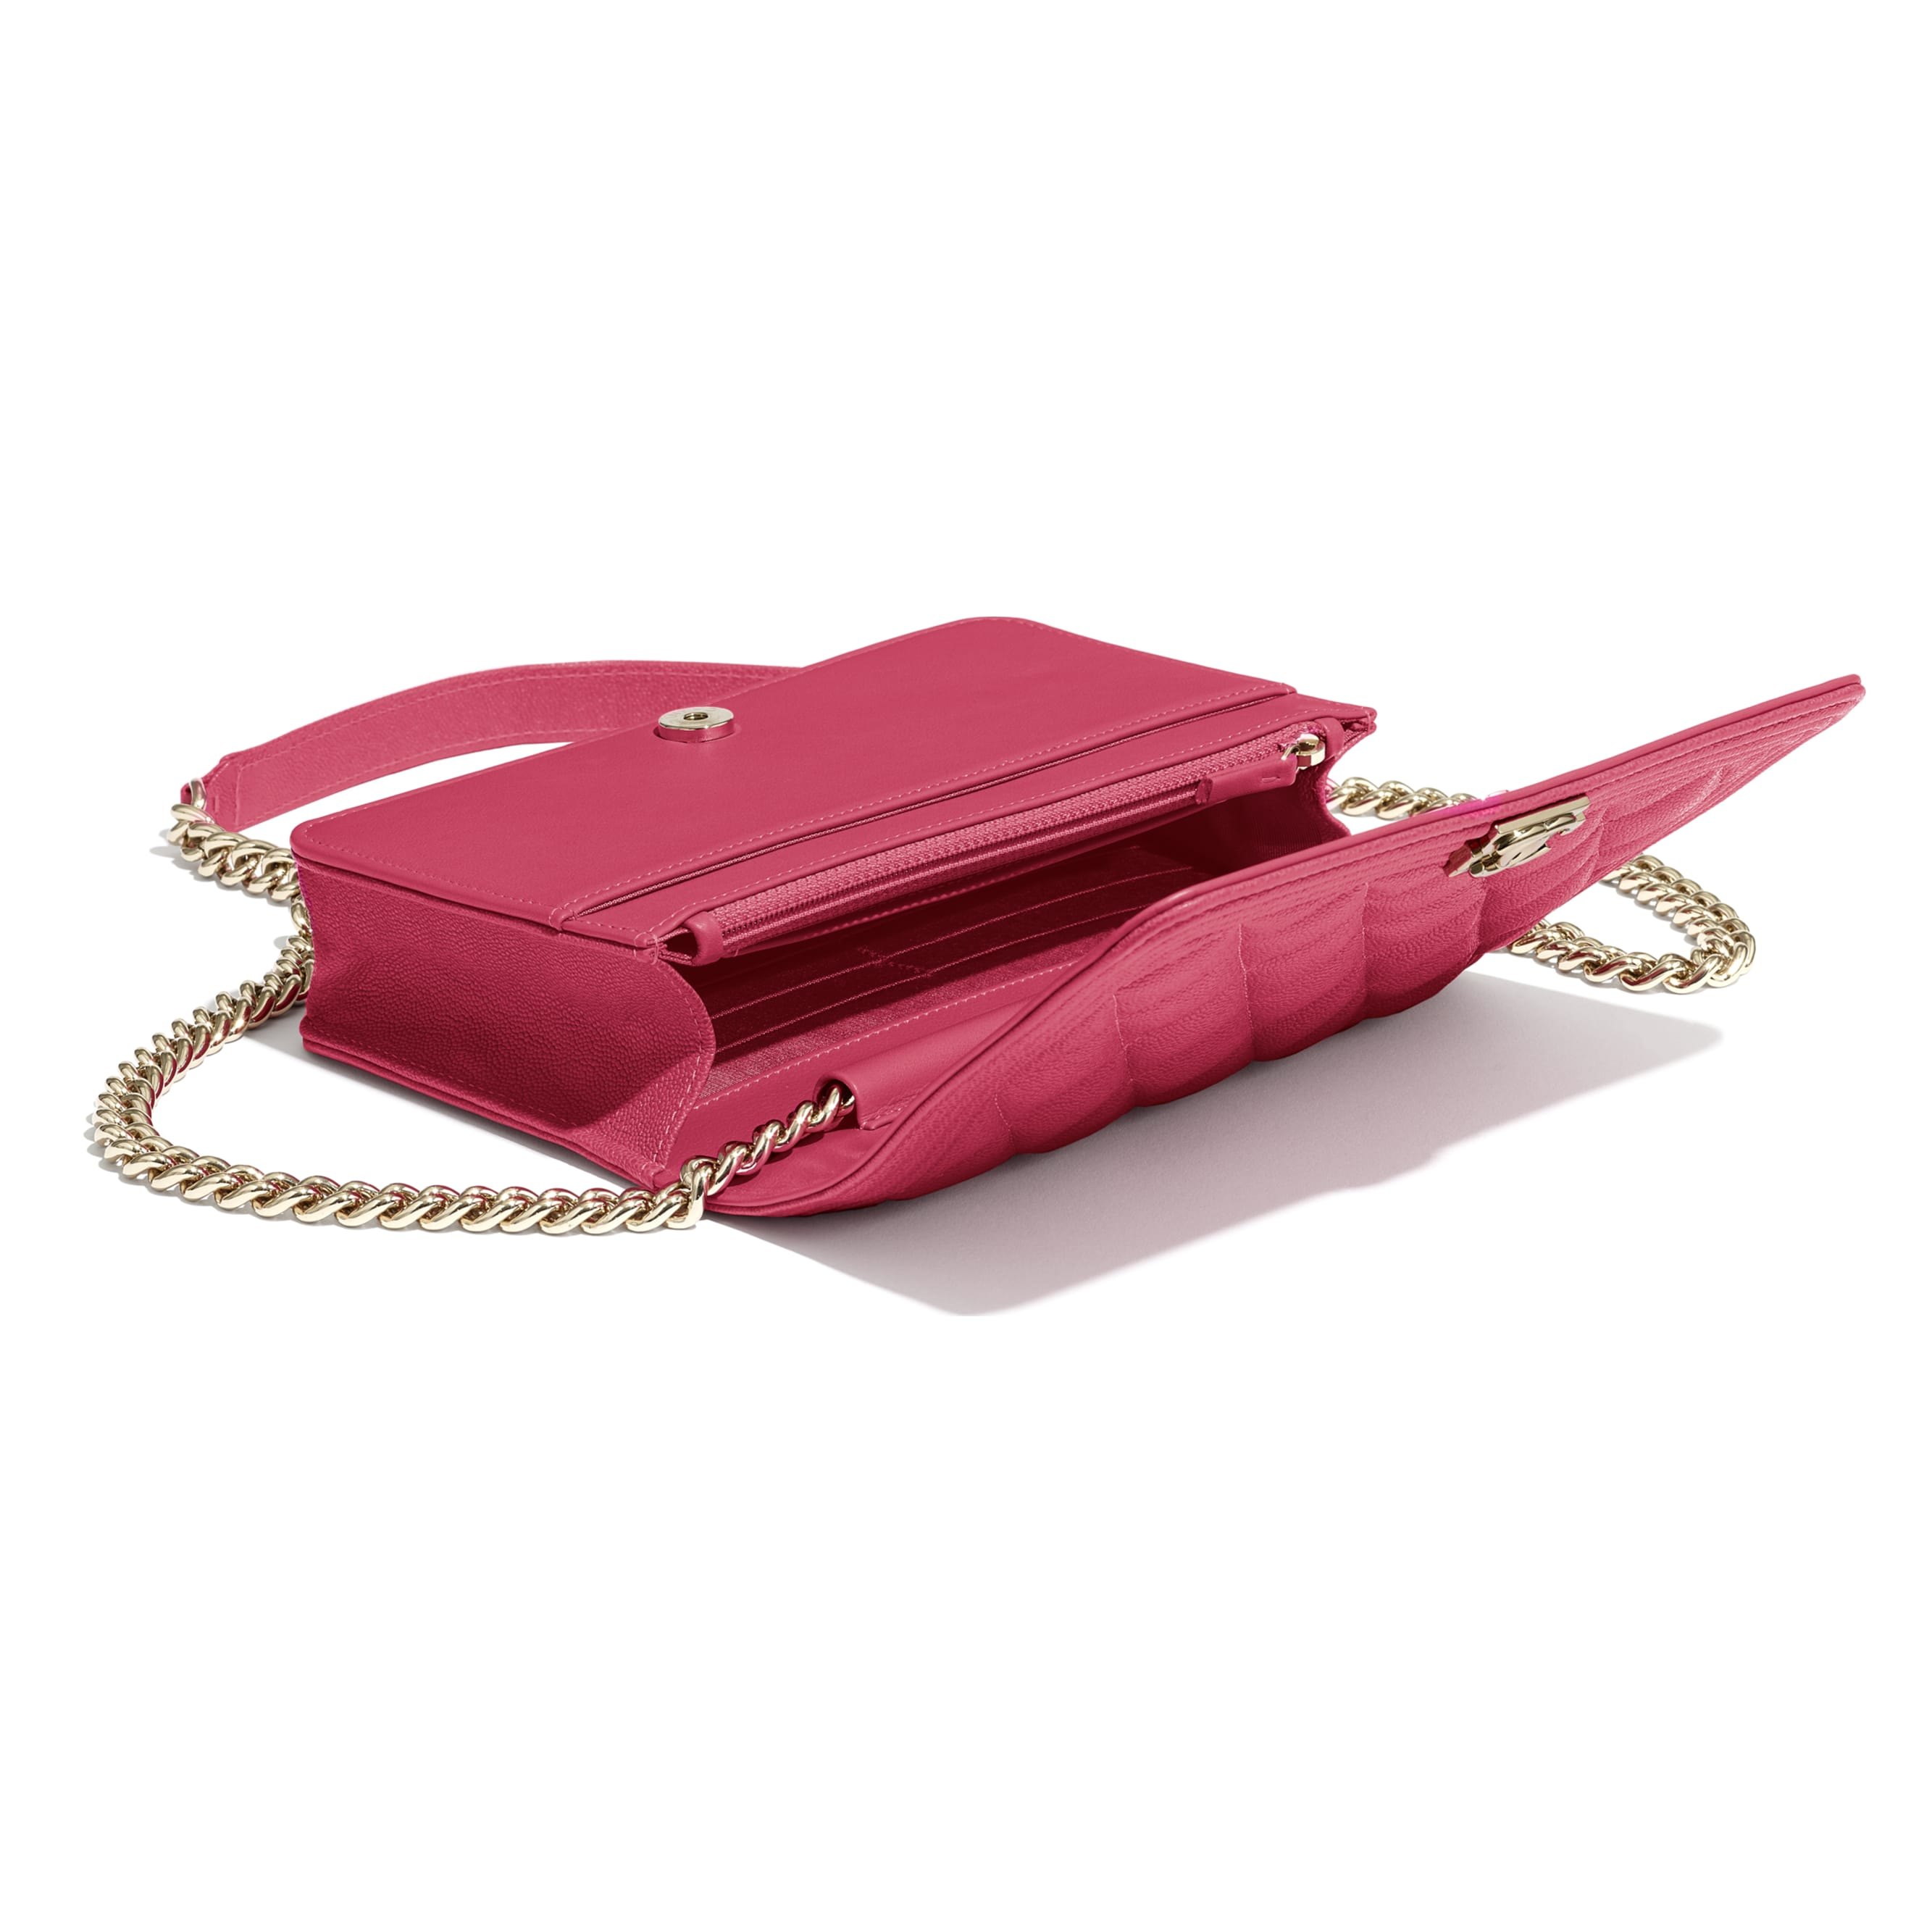 BOY CHANEL Wallet On Chain - Pink - Grained Calfskin & Gold-Tone Metal - CHANEL - Extra view - see standard sized version